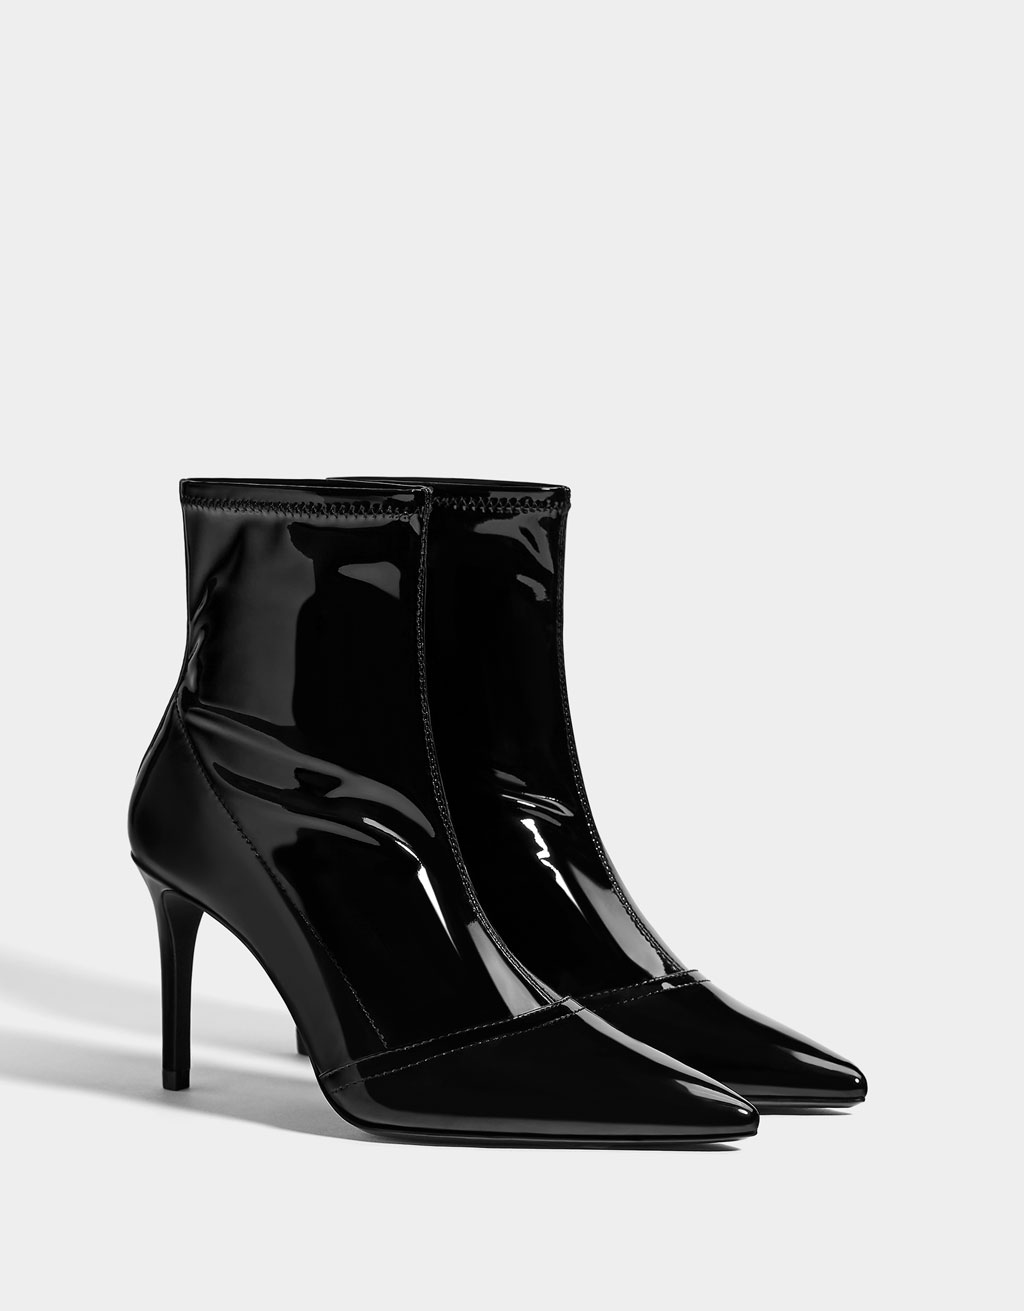 Faux patent leather stiletto heel boots